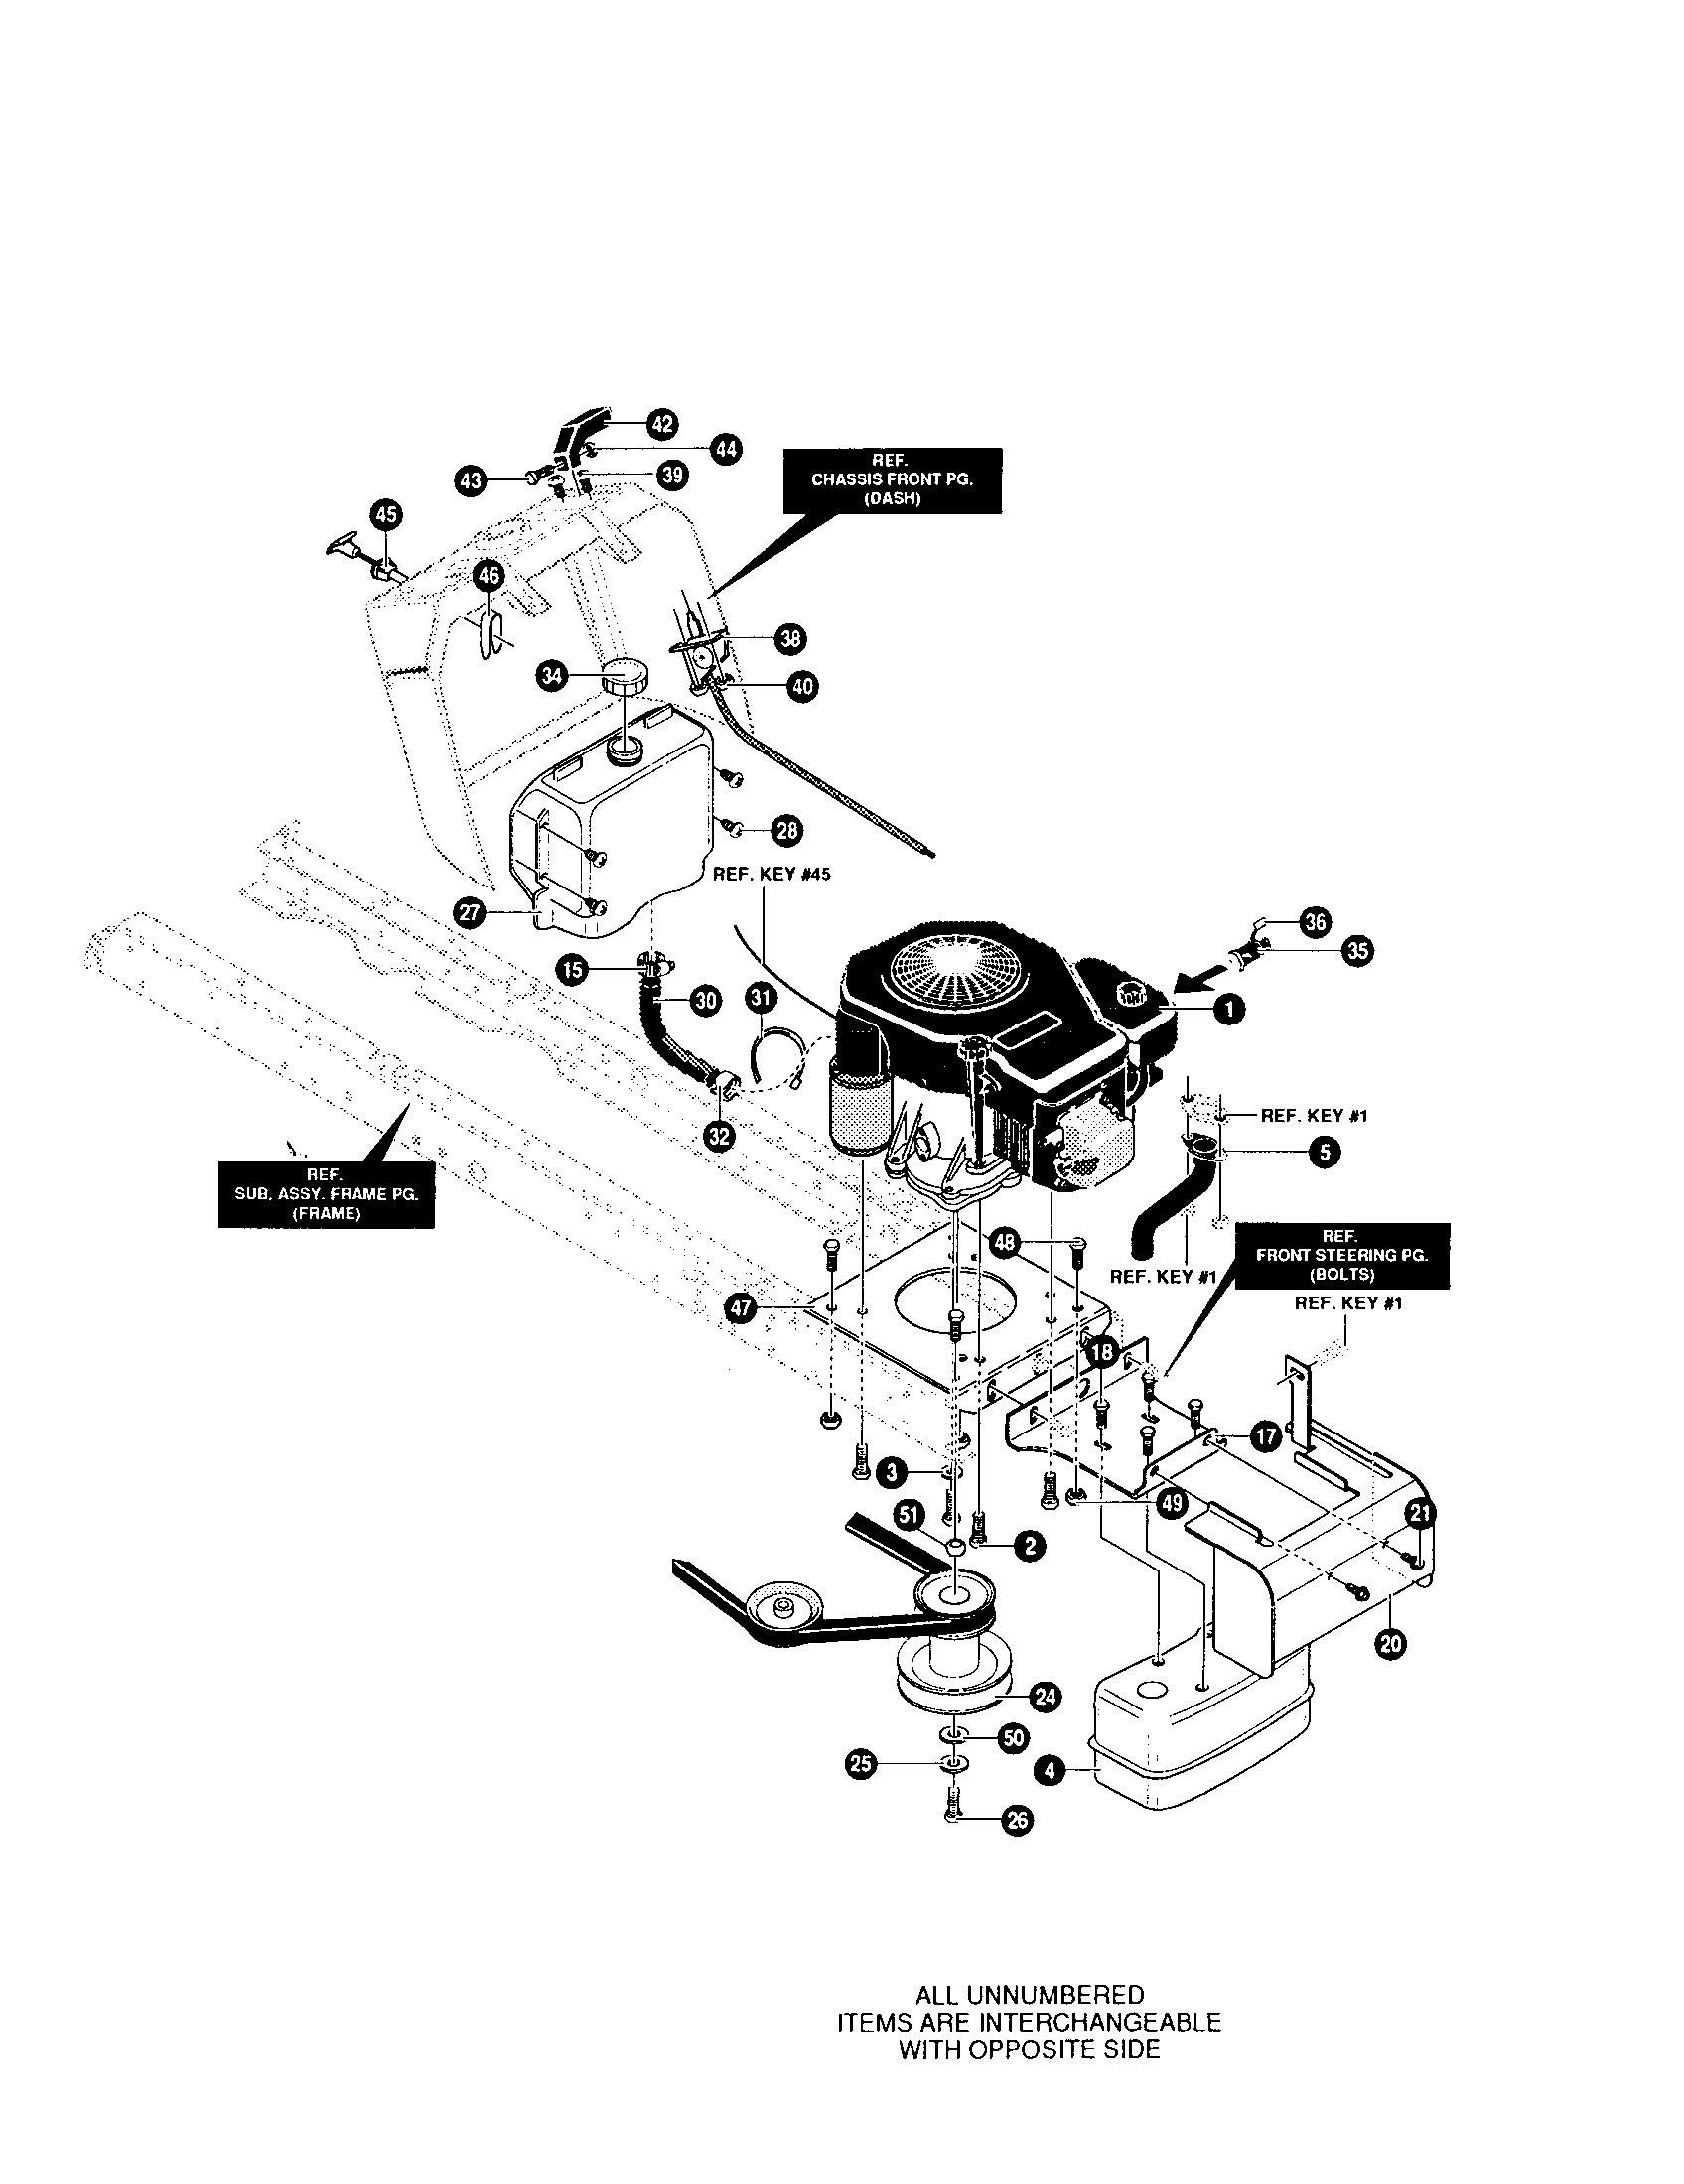 Kohler 15 5 Engine Diagram The Best Place To Get Wiring